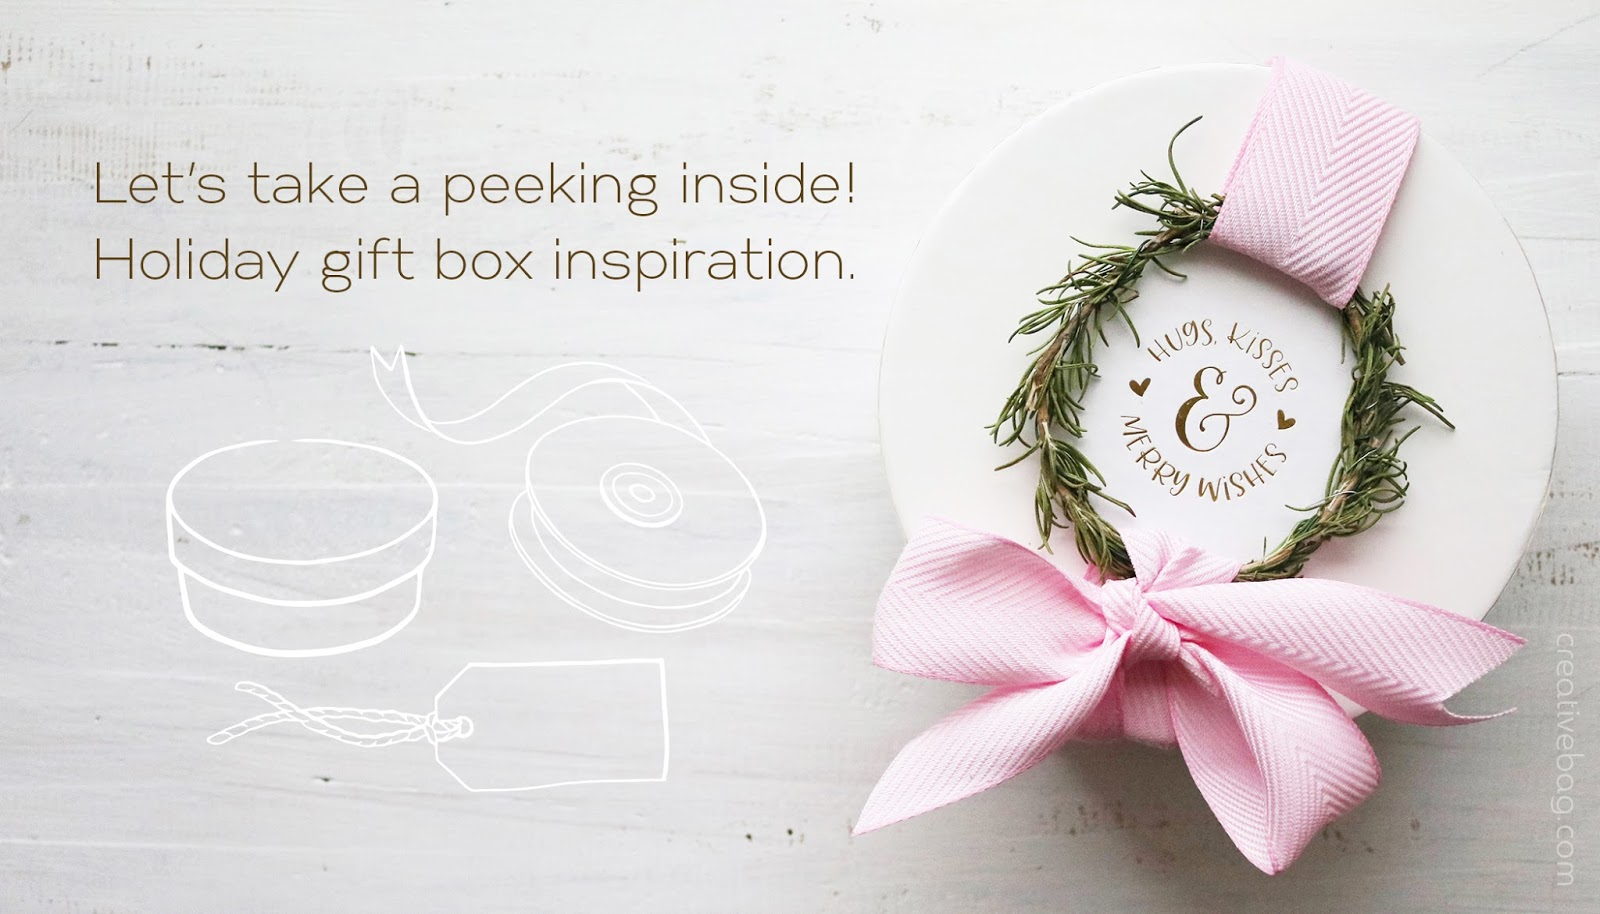 gift box packaging inspiration for holiday gift giving | creativebag.com